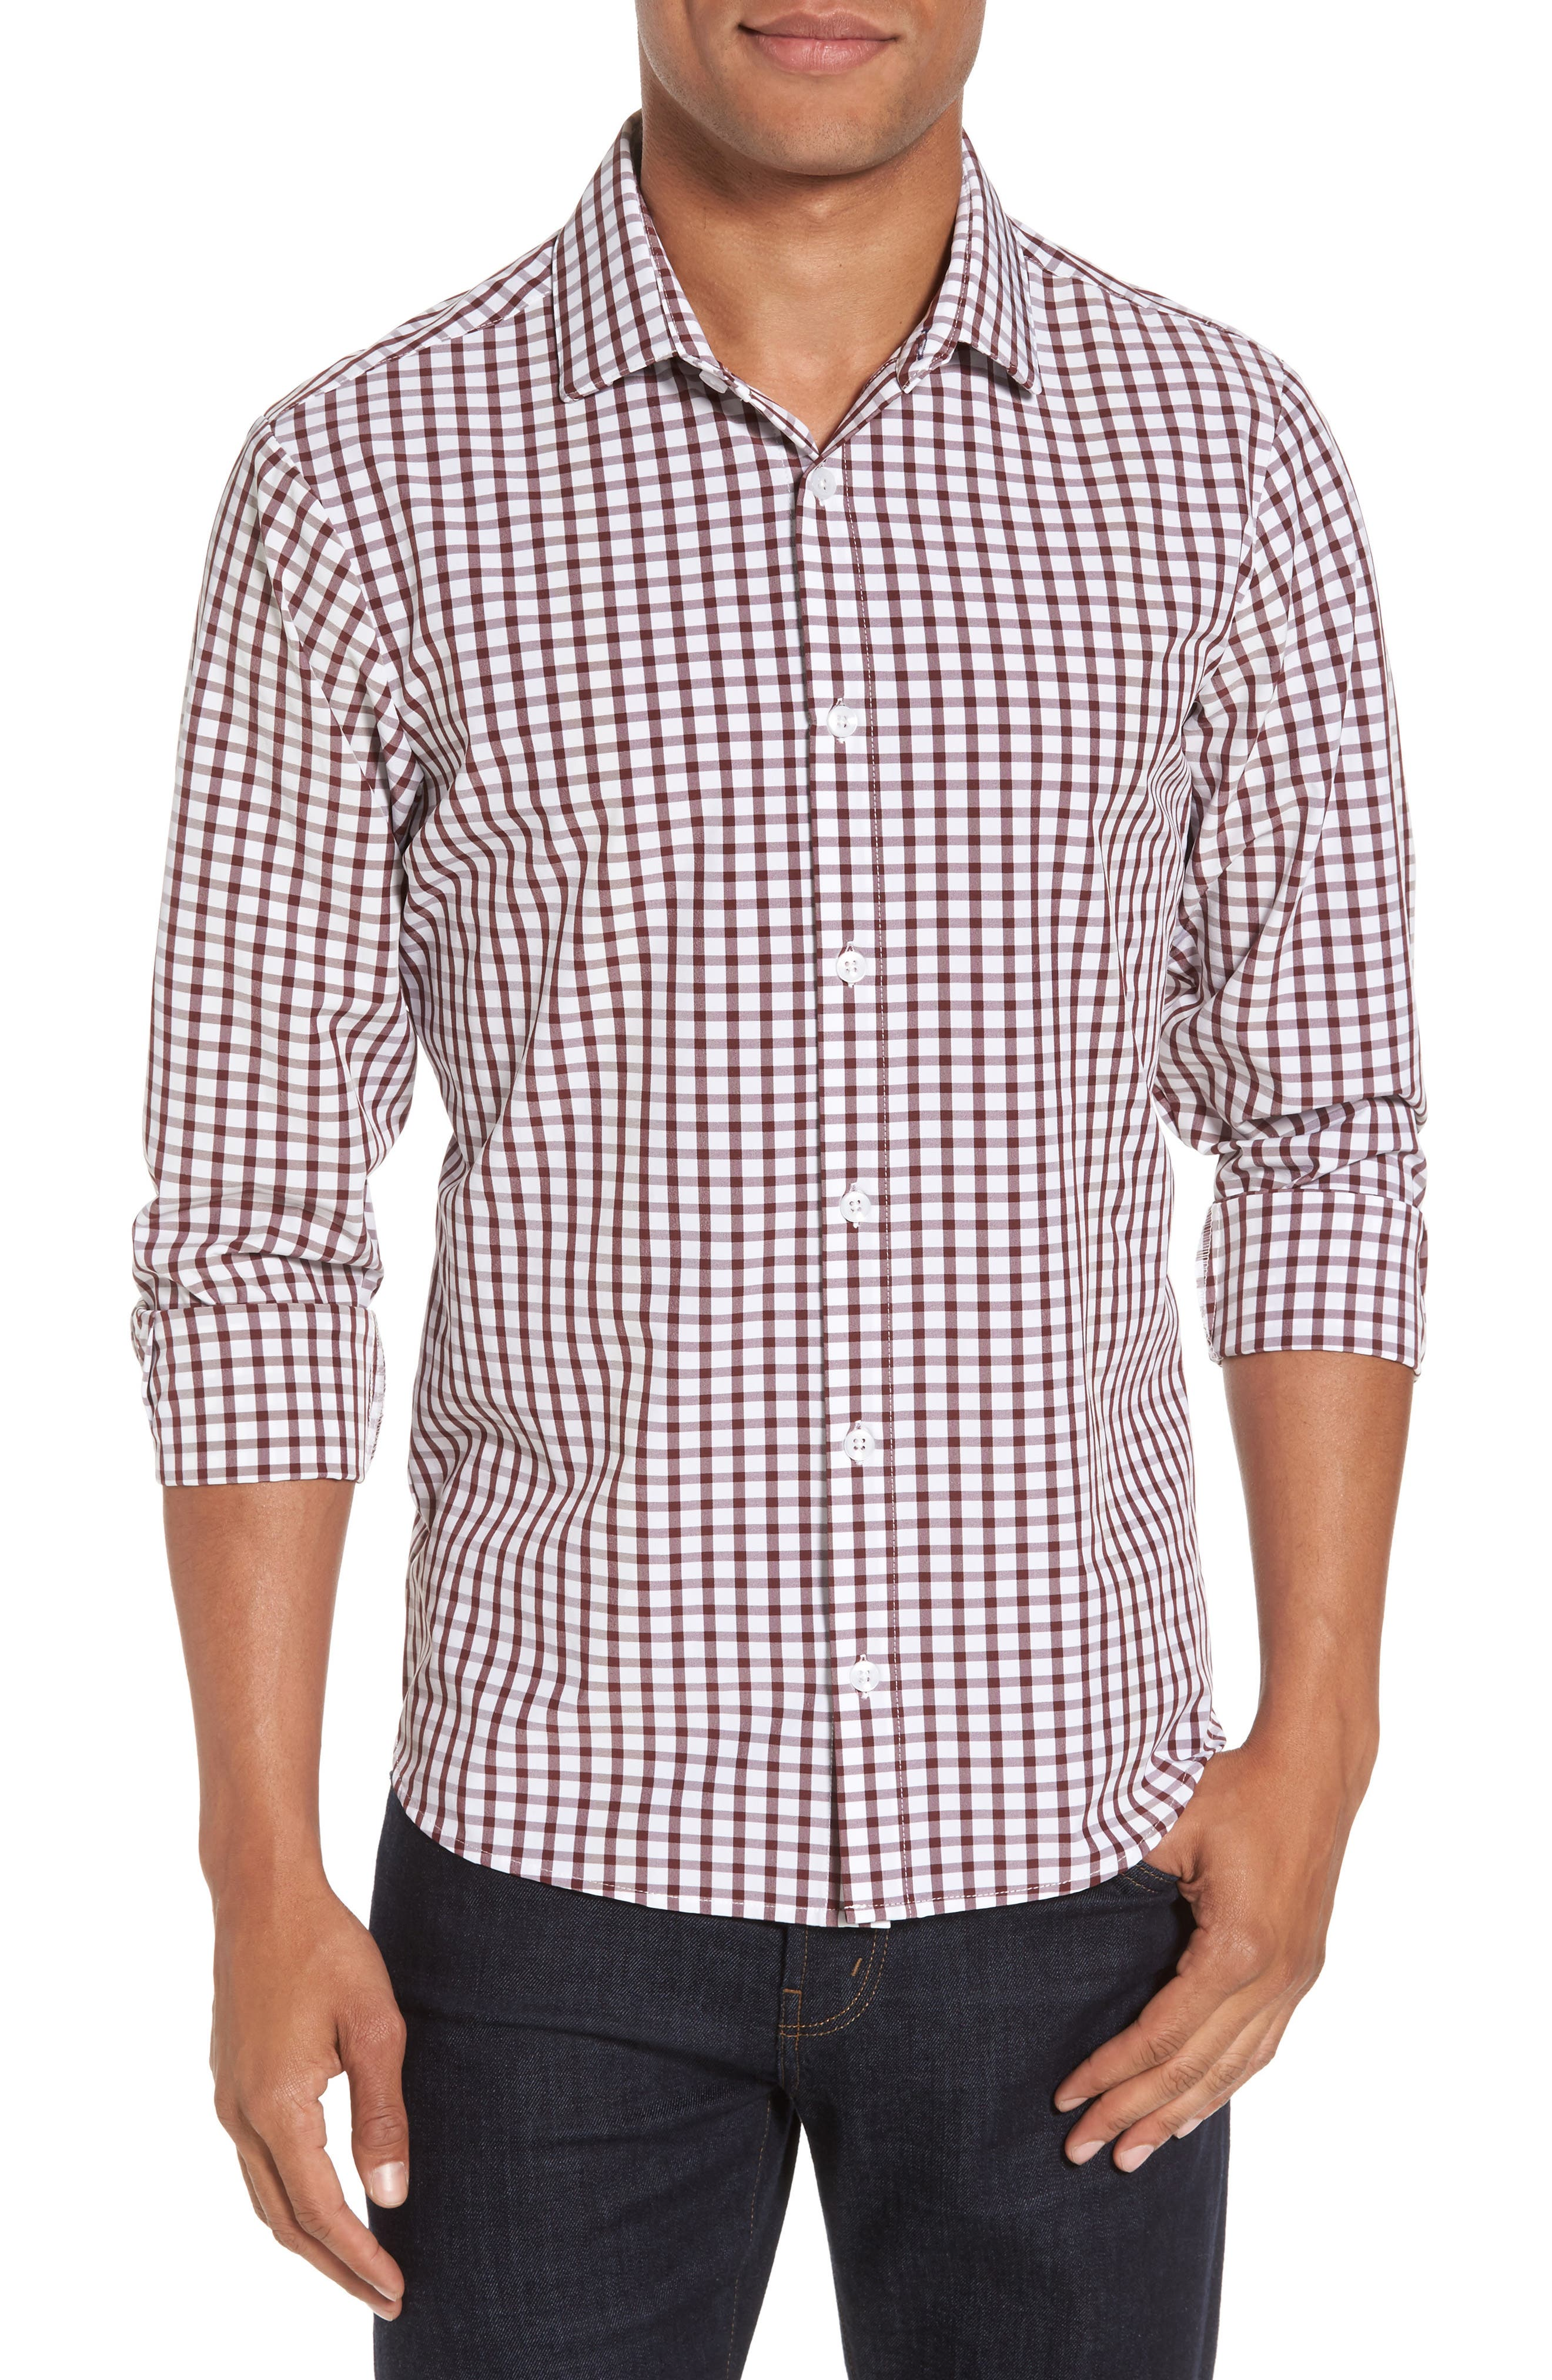 Cooper Check Performance Sport Shirt,                         Main,                         color, Red